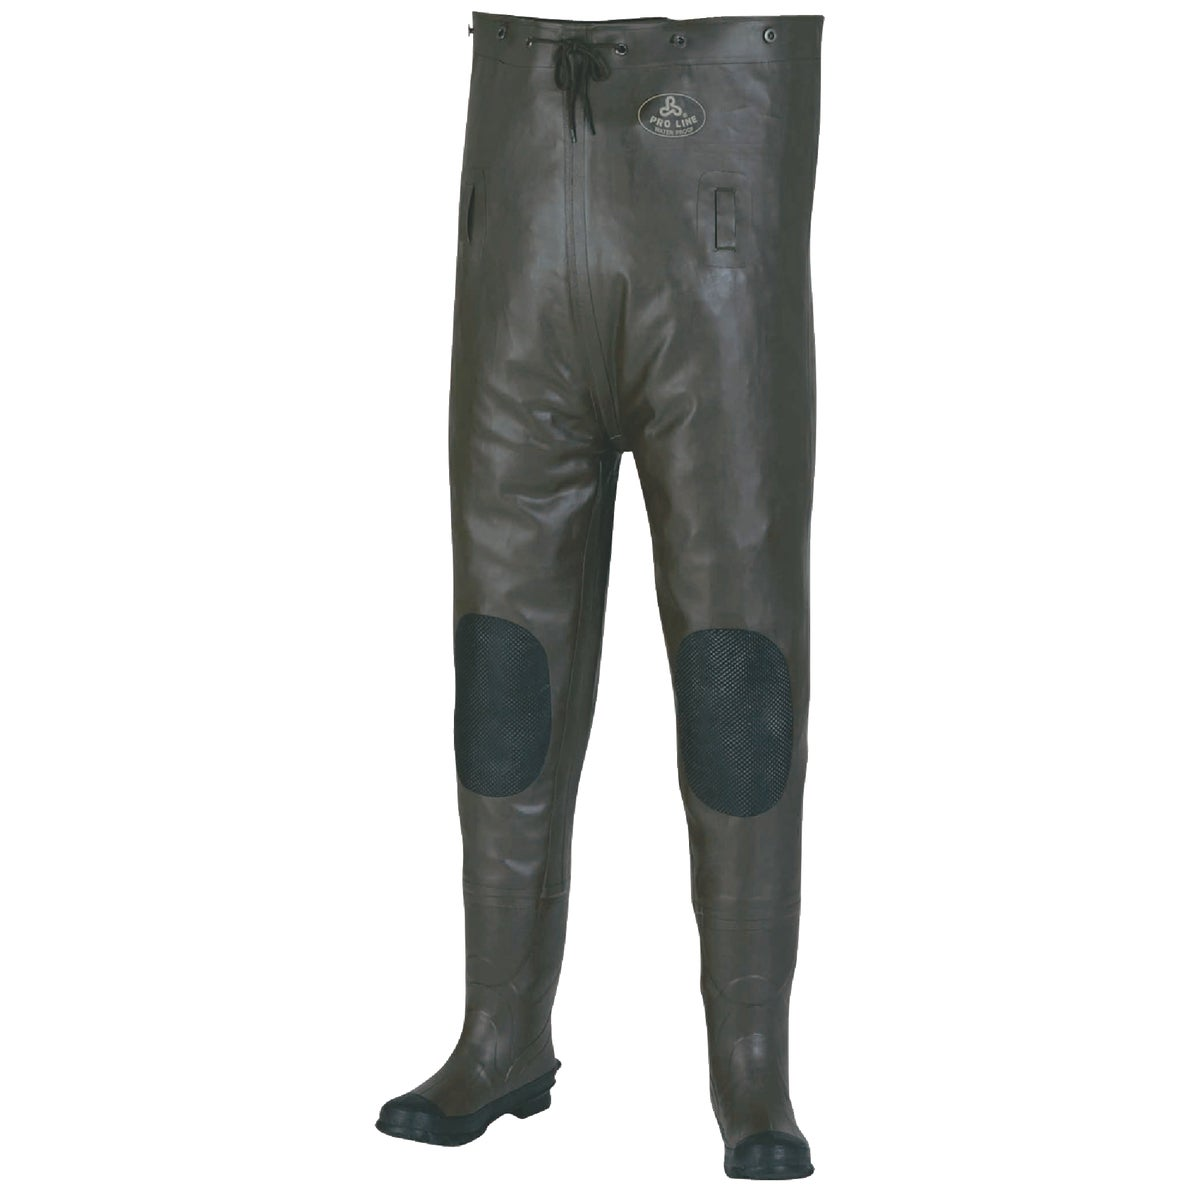 SZ 9 CHEST WADER - 2012-9 by Pro Line Mfg Co